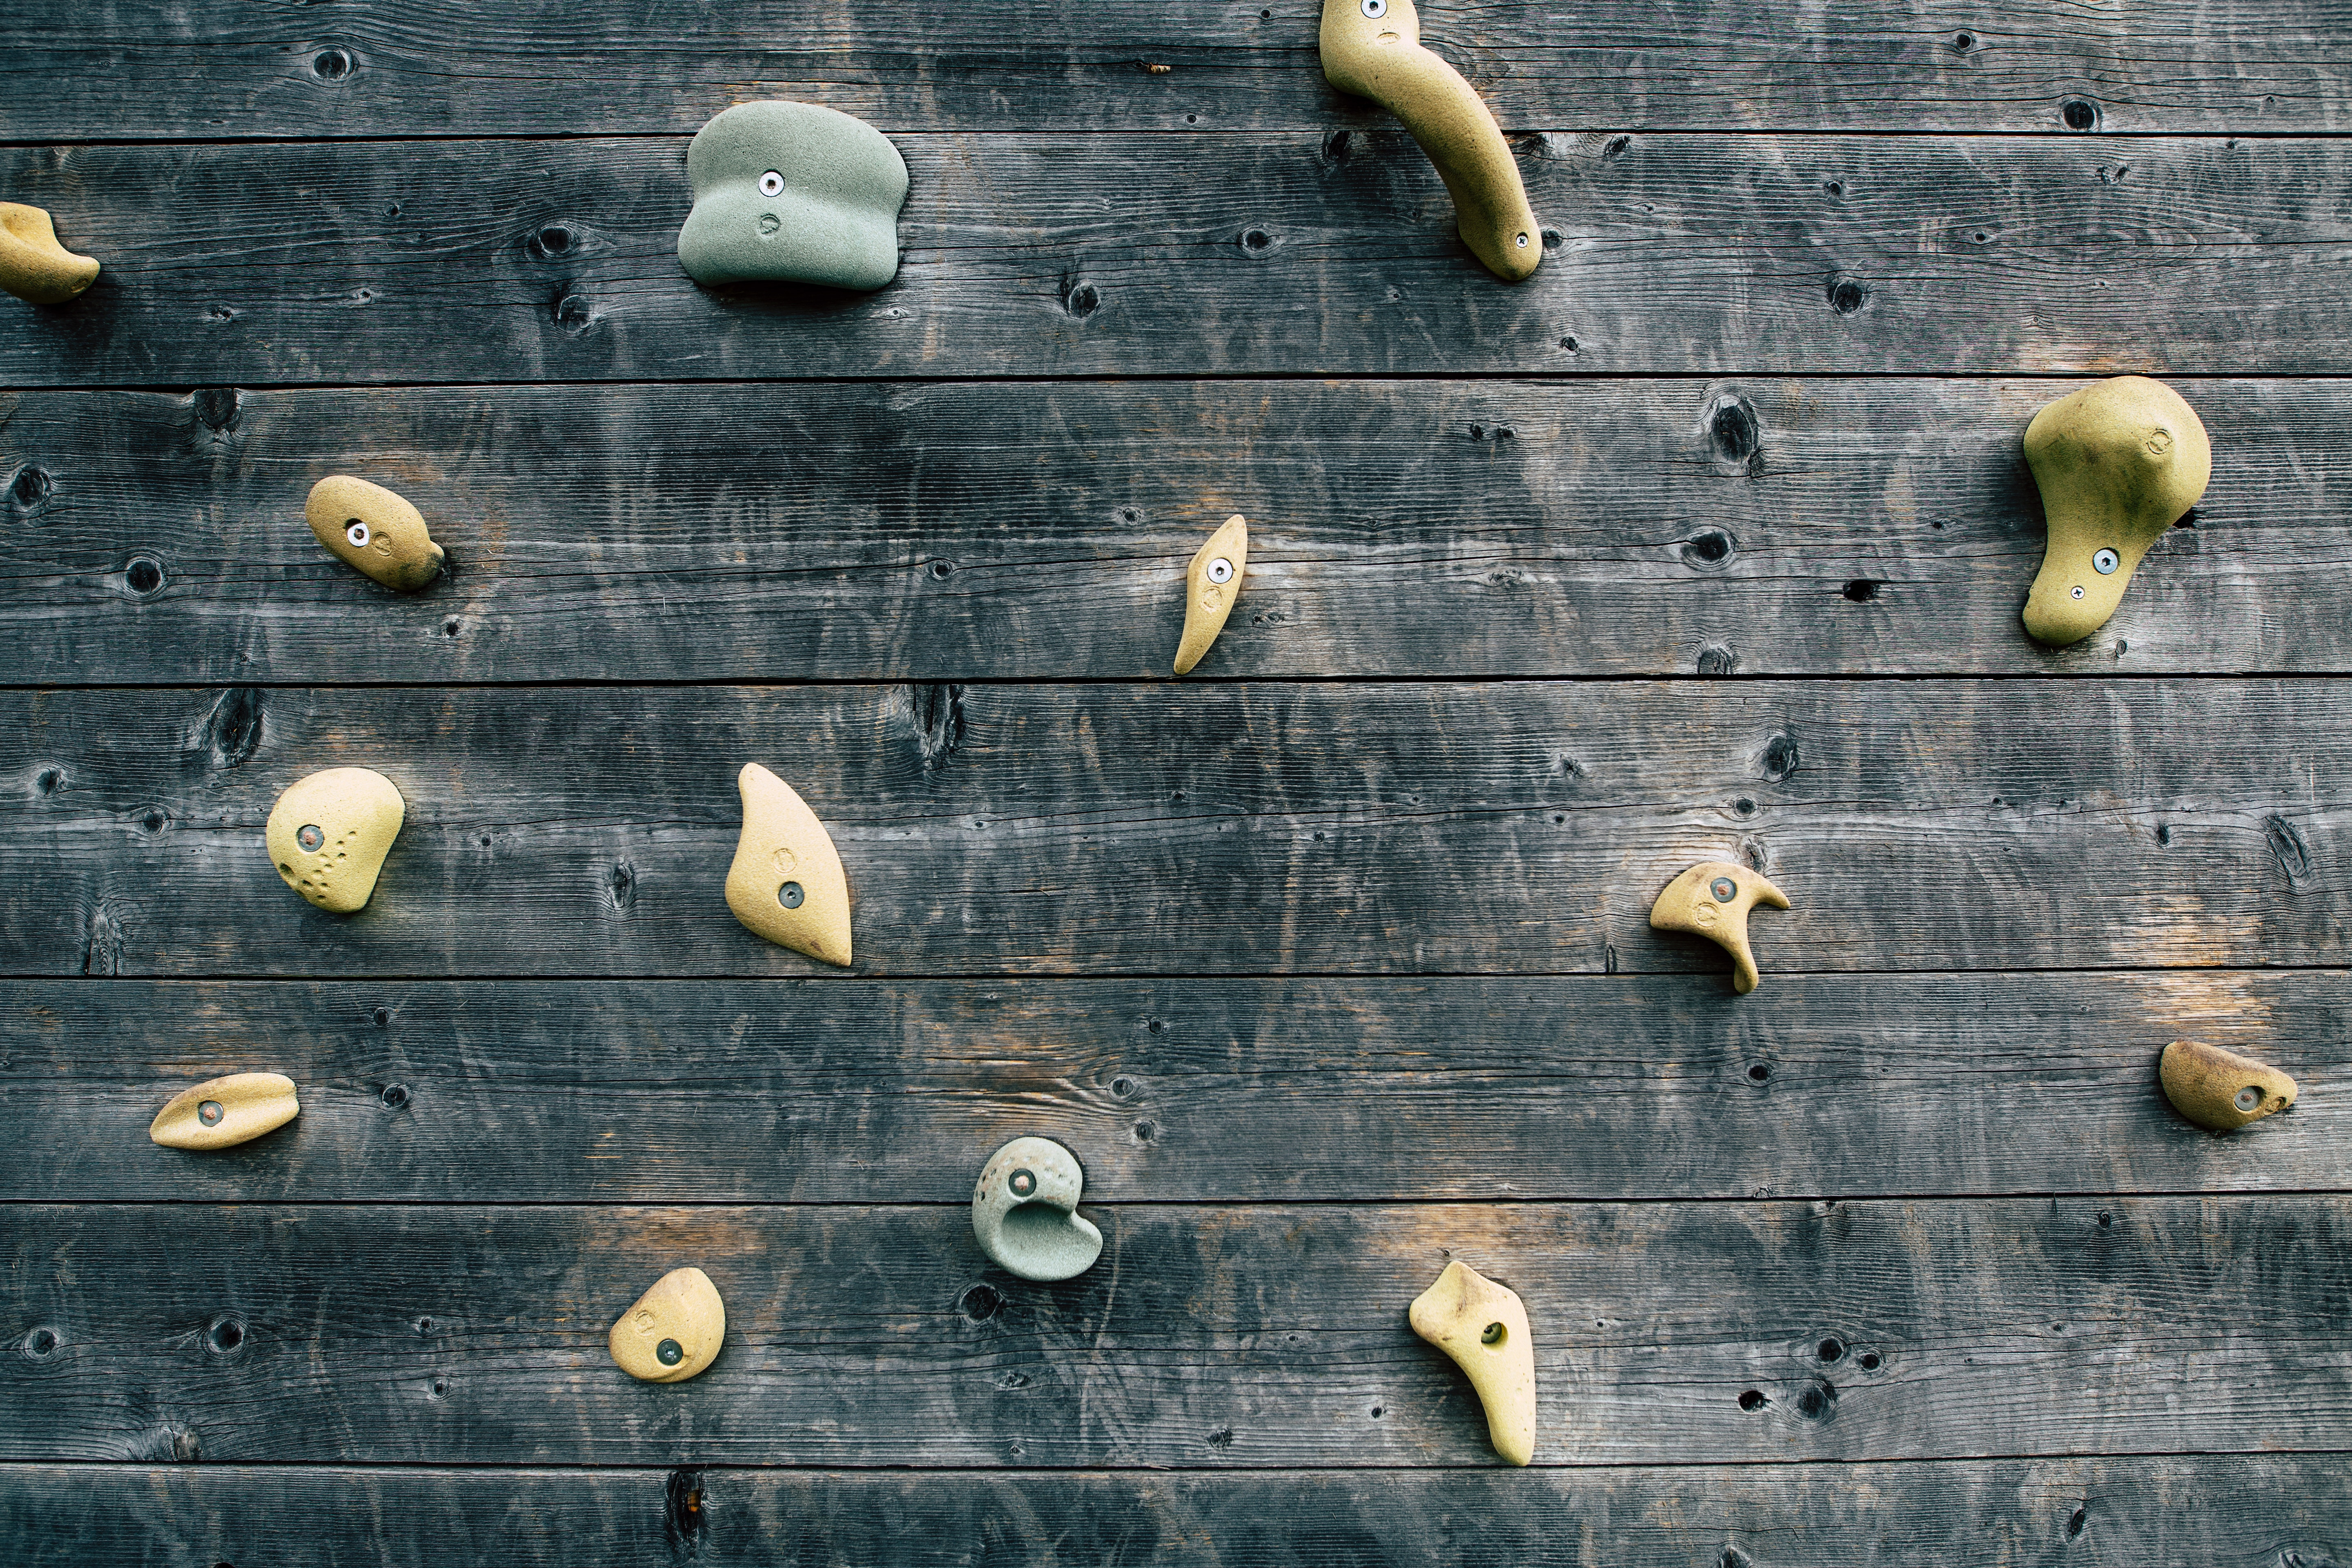 photo of climbing holds on wooden wall